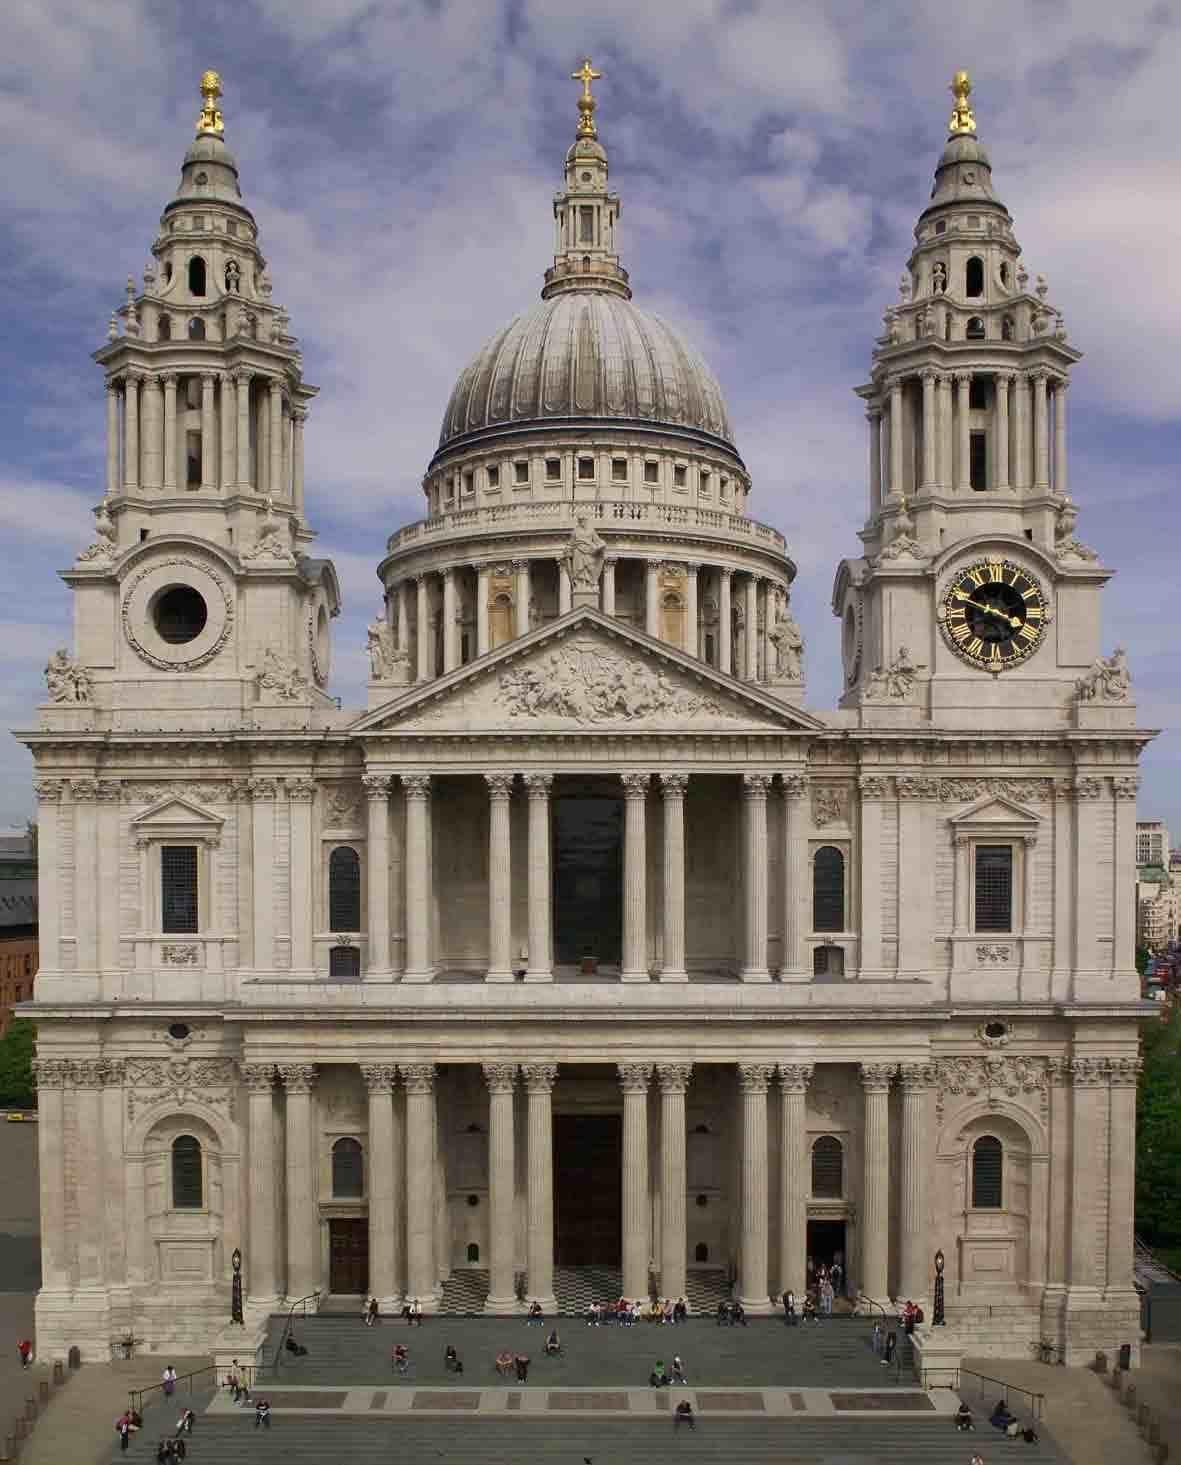 Pin by Susan Quevedo on Anglophile | Cathedral church ...